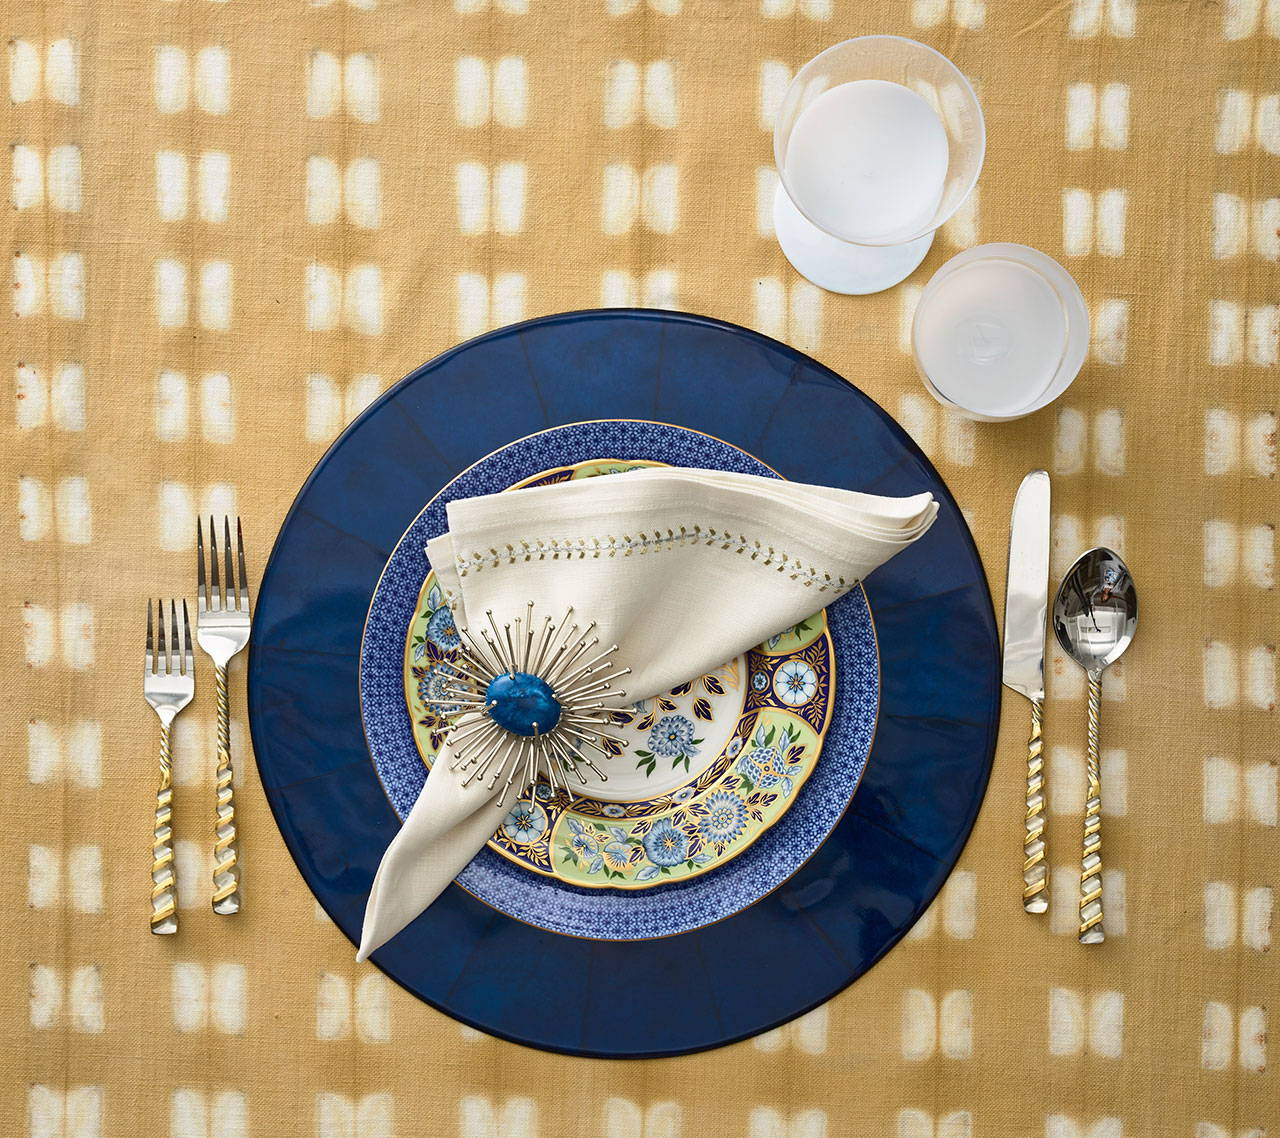 A coastal table setting